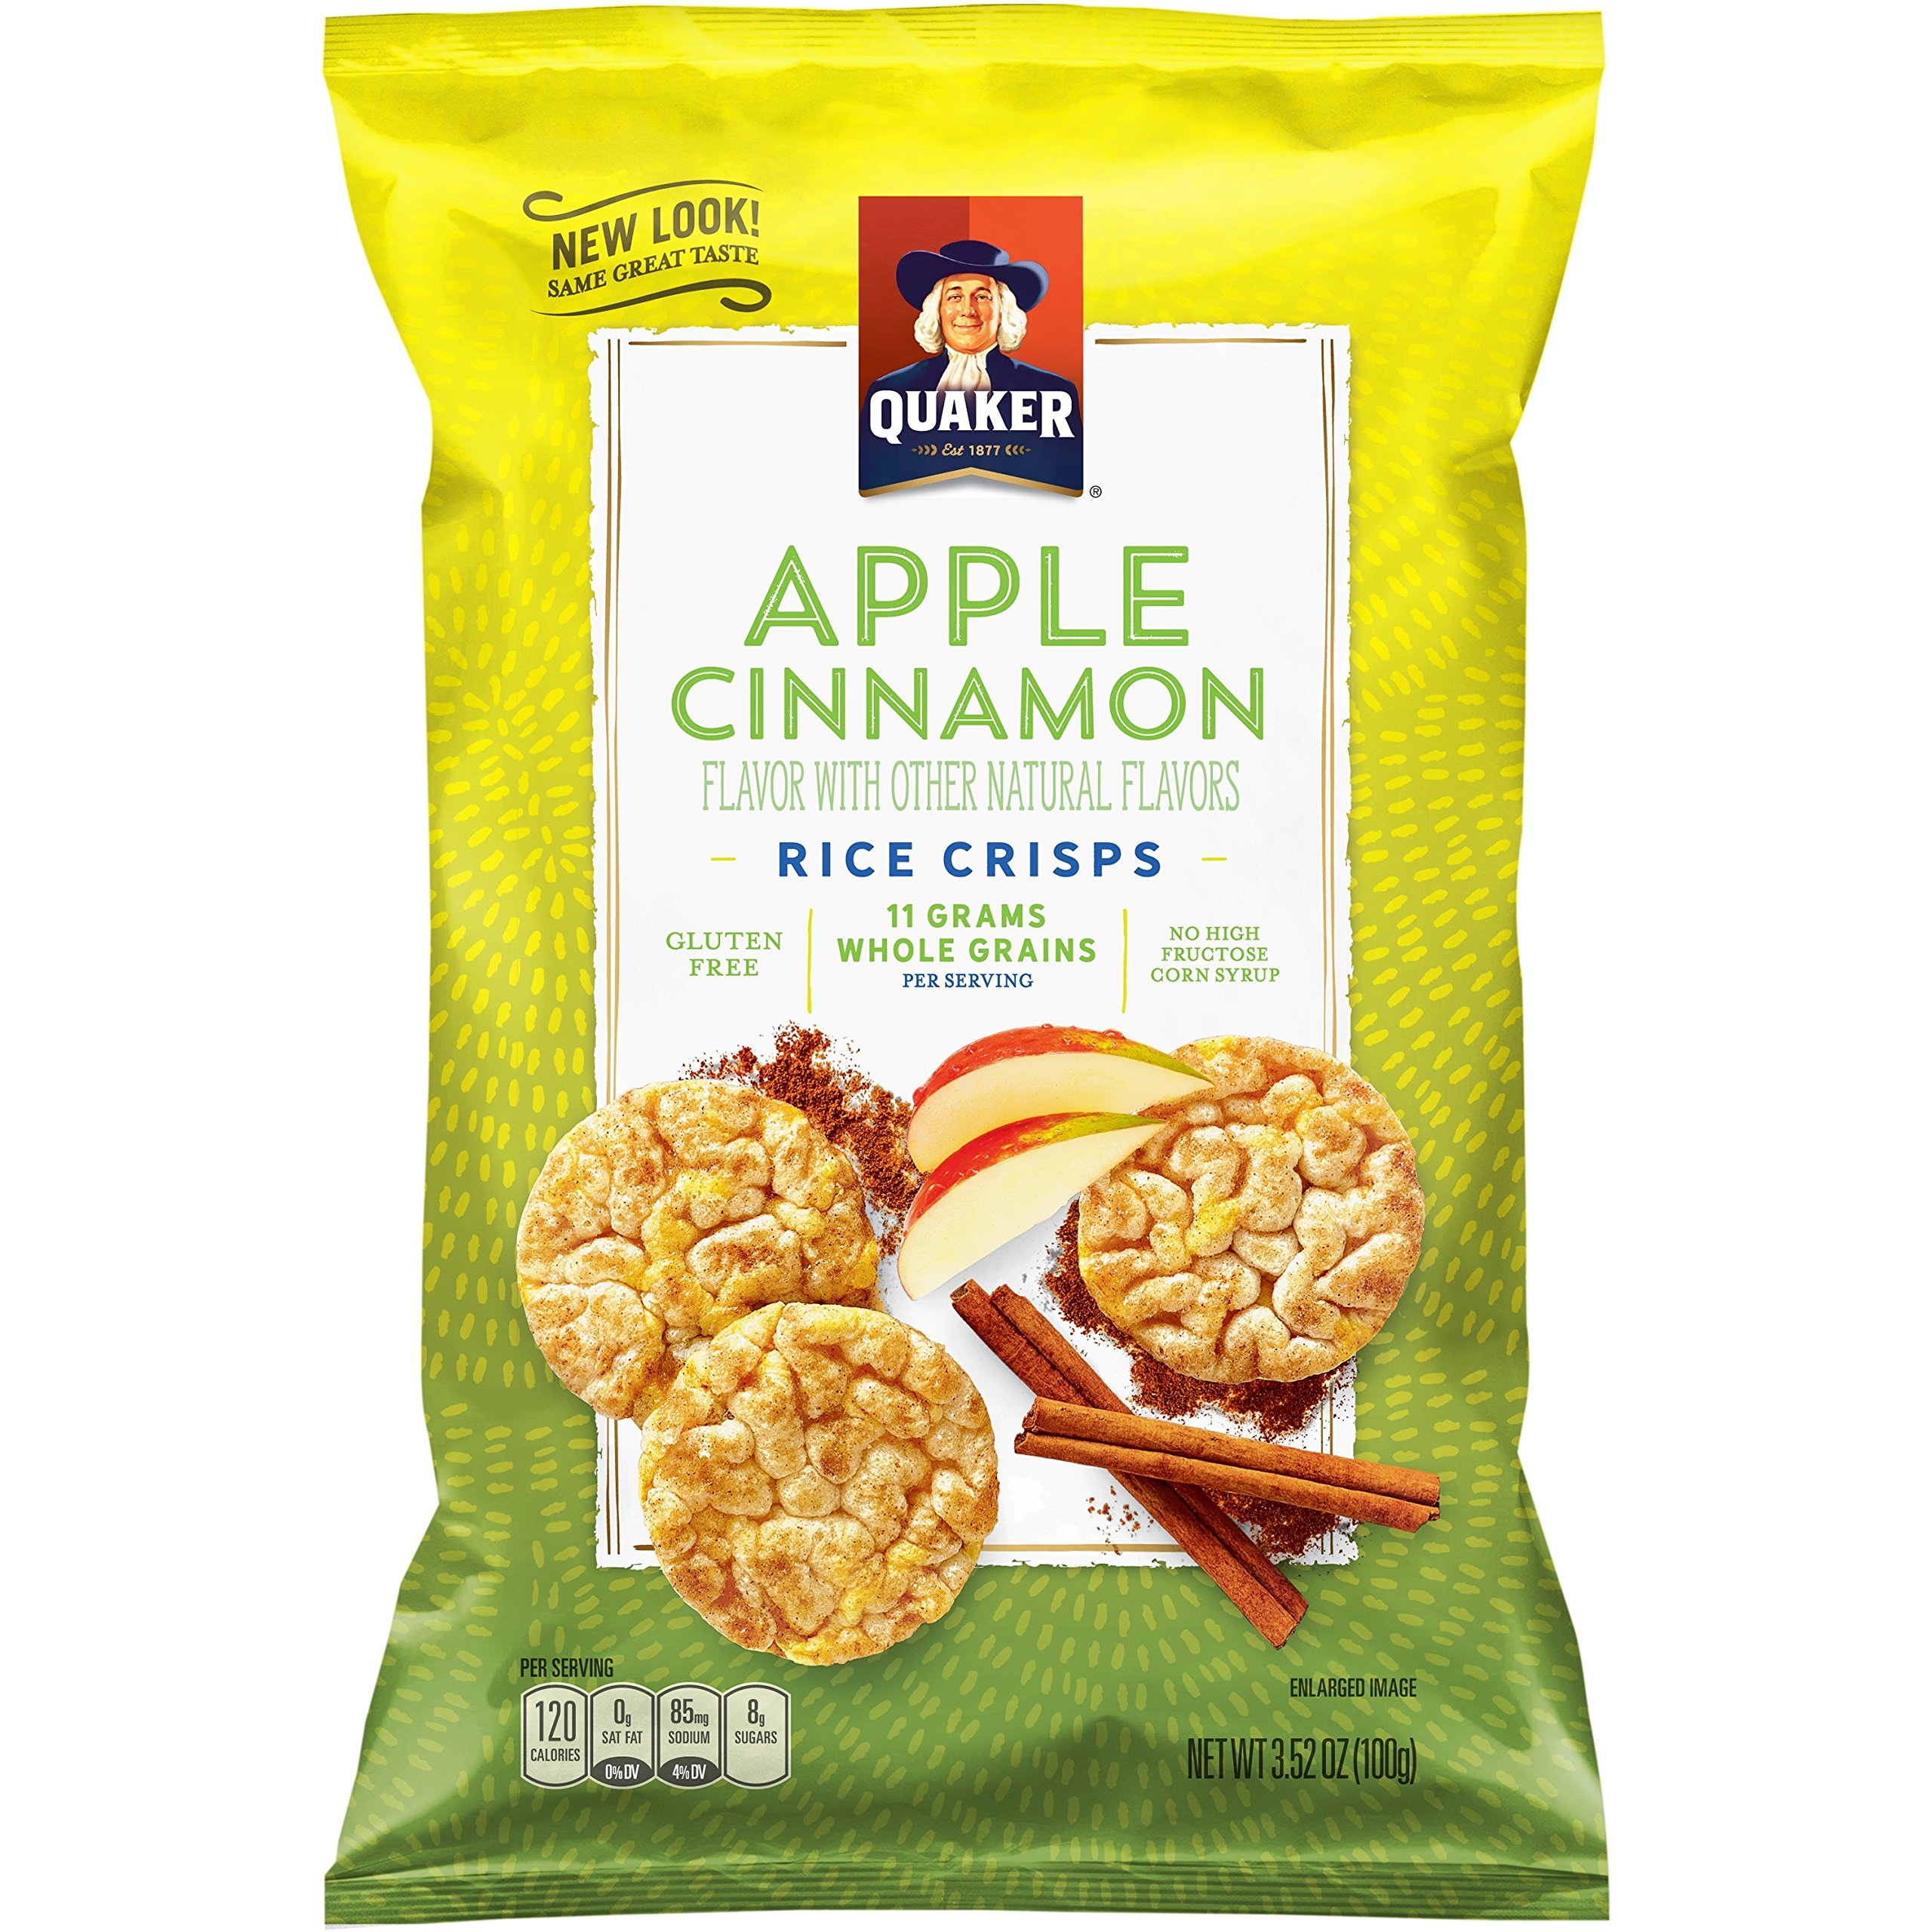 Quaker Rice Crisps, Apple Cinnamon, 3.52 Ounce, Pack of 6 (Packaging May Vary) by Quaker